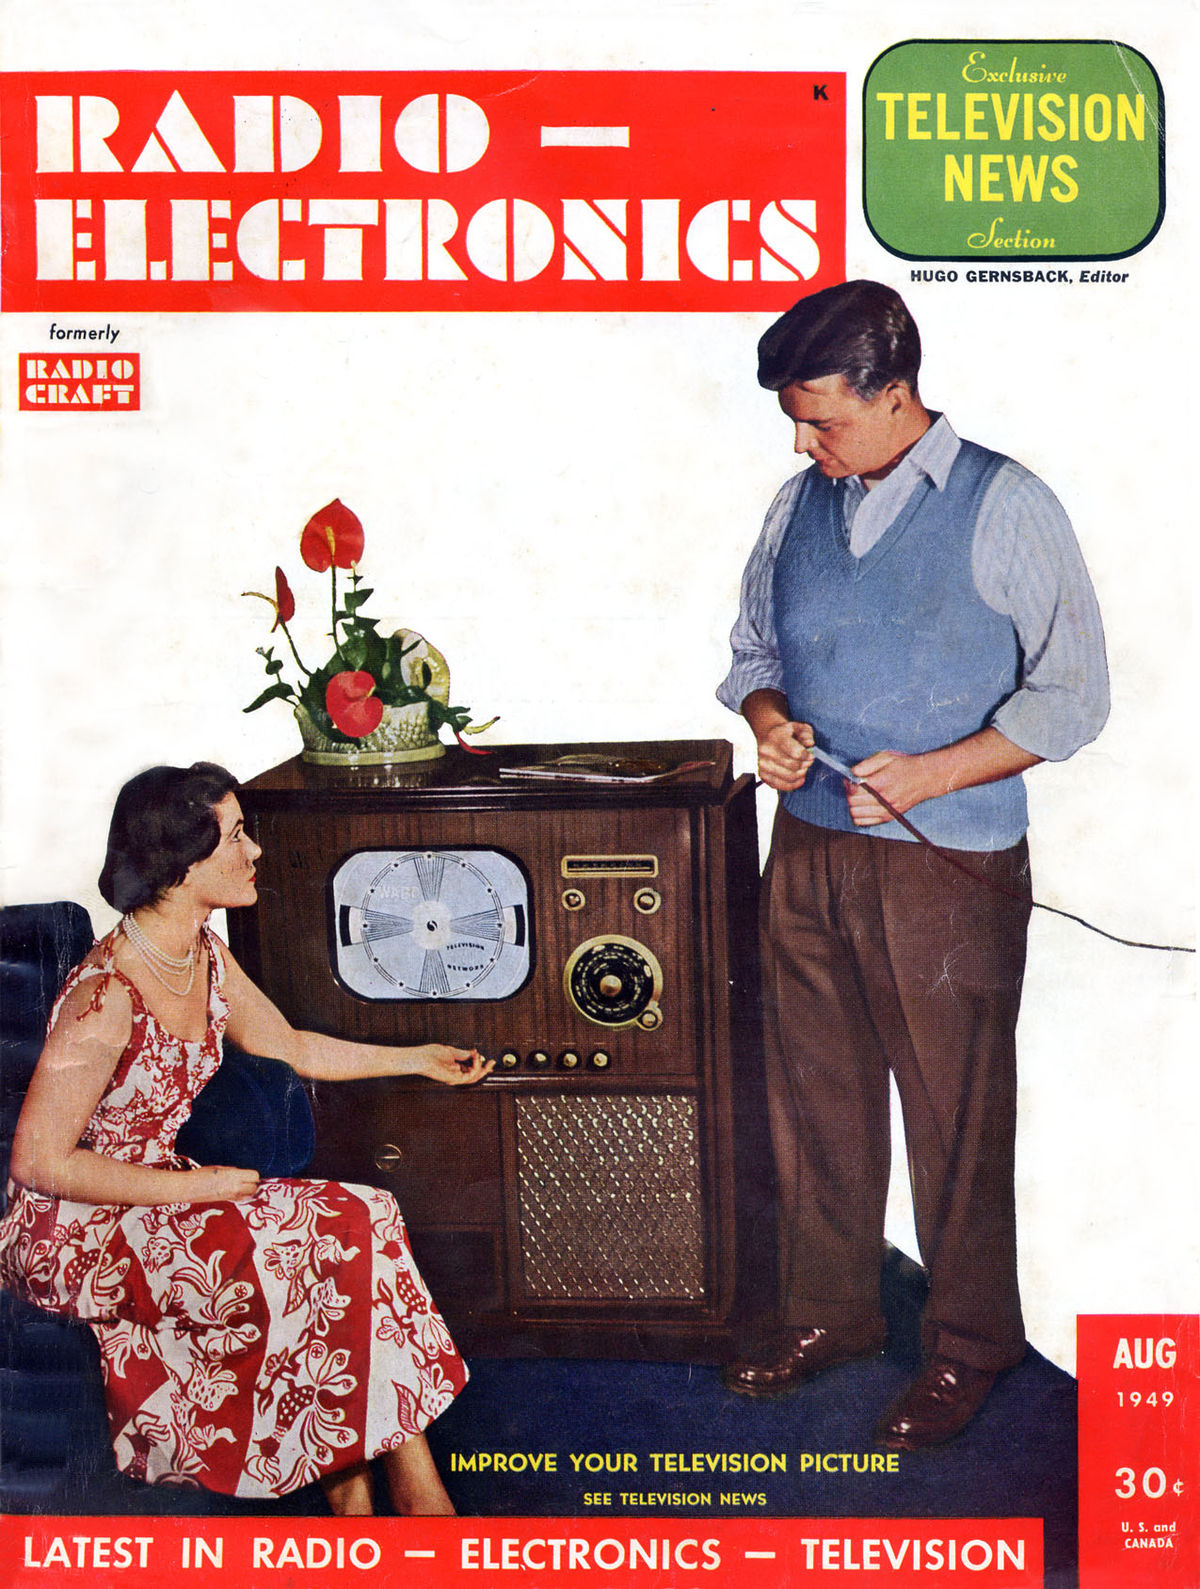 Radio-Electronics - Wikipedia